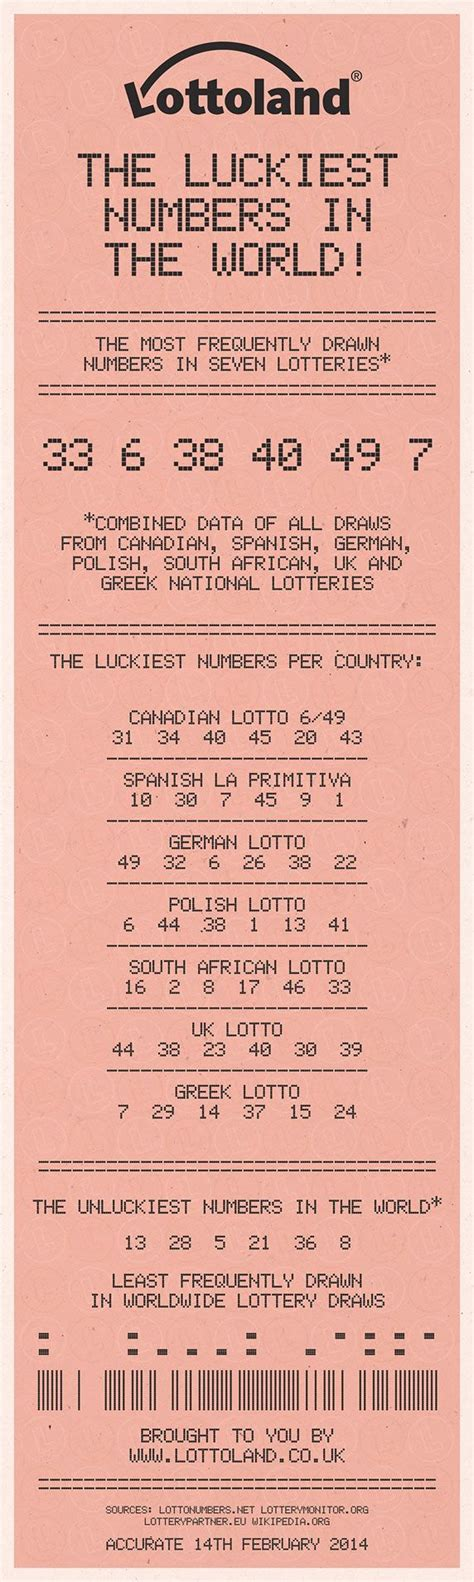 Lucky Money Winning Numbers - 17 best ideas about winning lottery numbers on pinterest lotto lottery lucky number